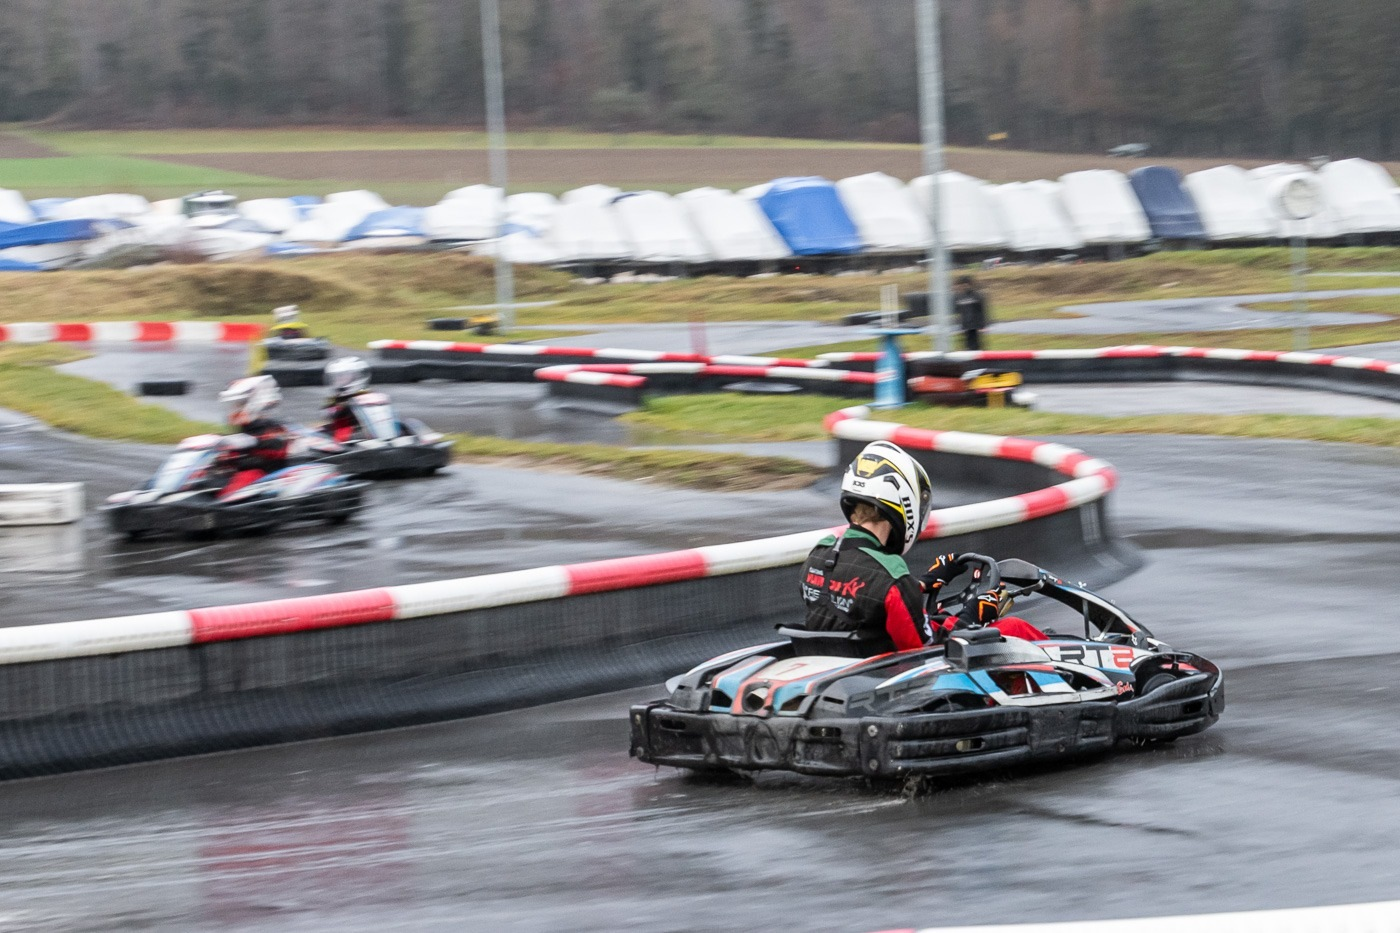 Pilotage Karting et team building